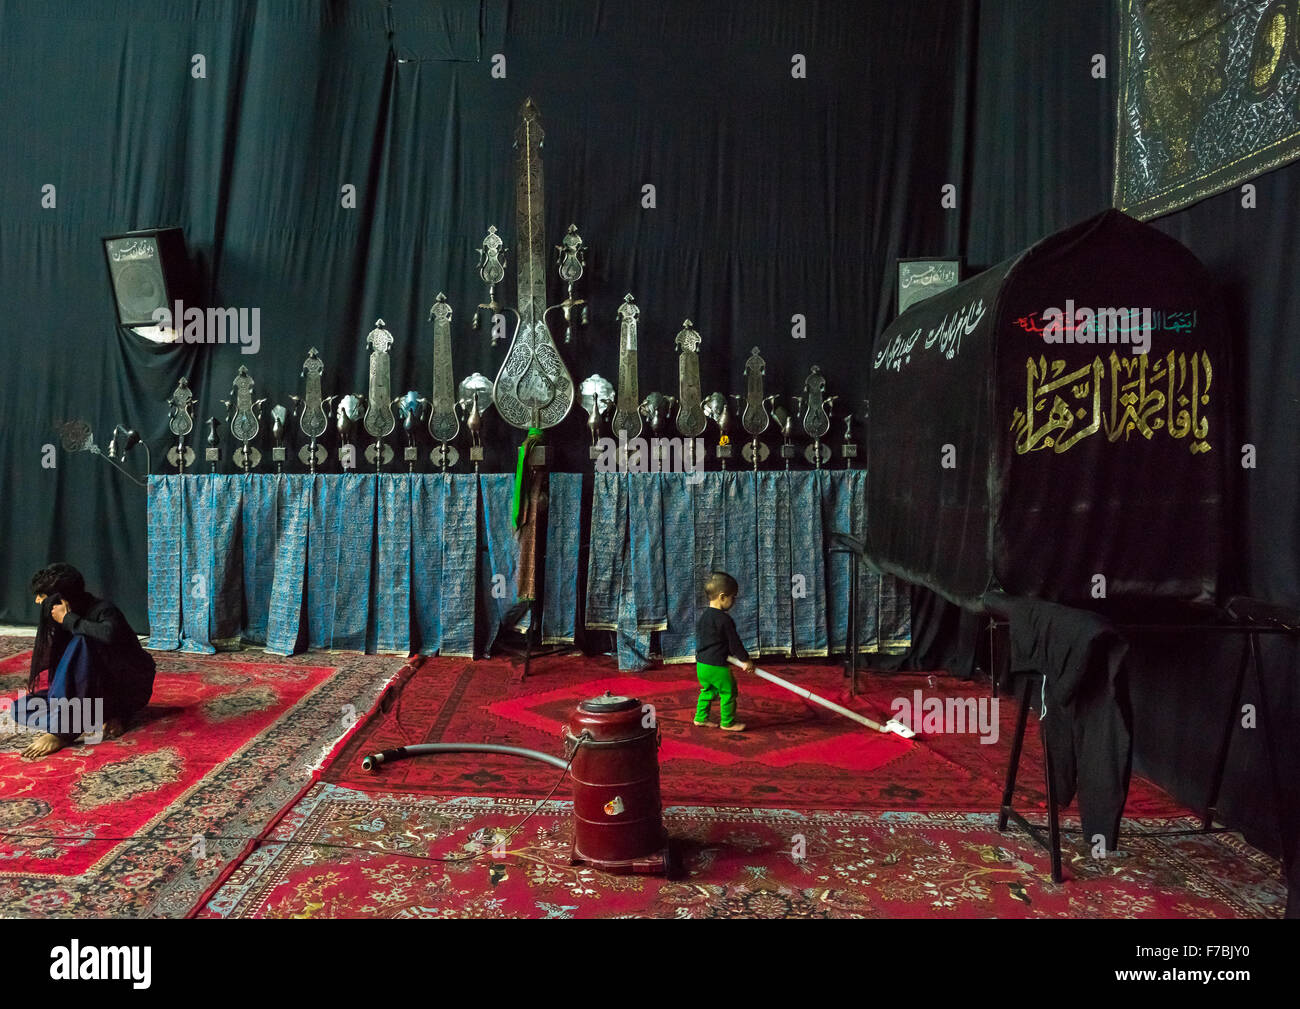 Little Boy Playing With An Aspirator In Front Of An Alam On Ashura, The Day Of The Death Of Imam Hussein, Isfahan - Stock Image